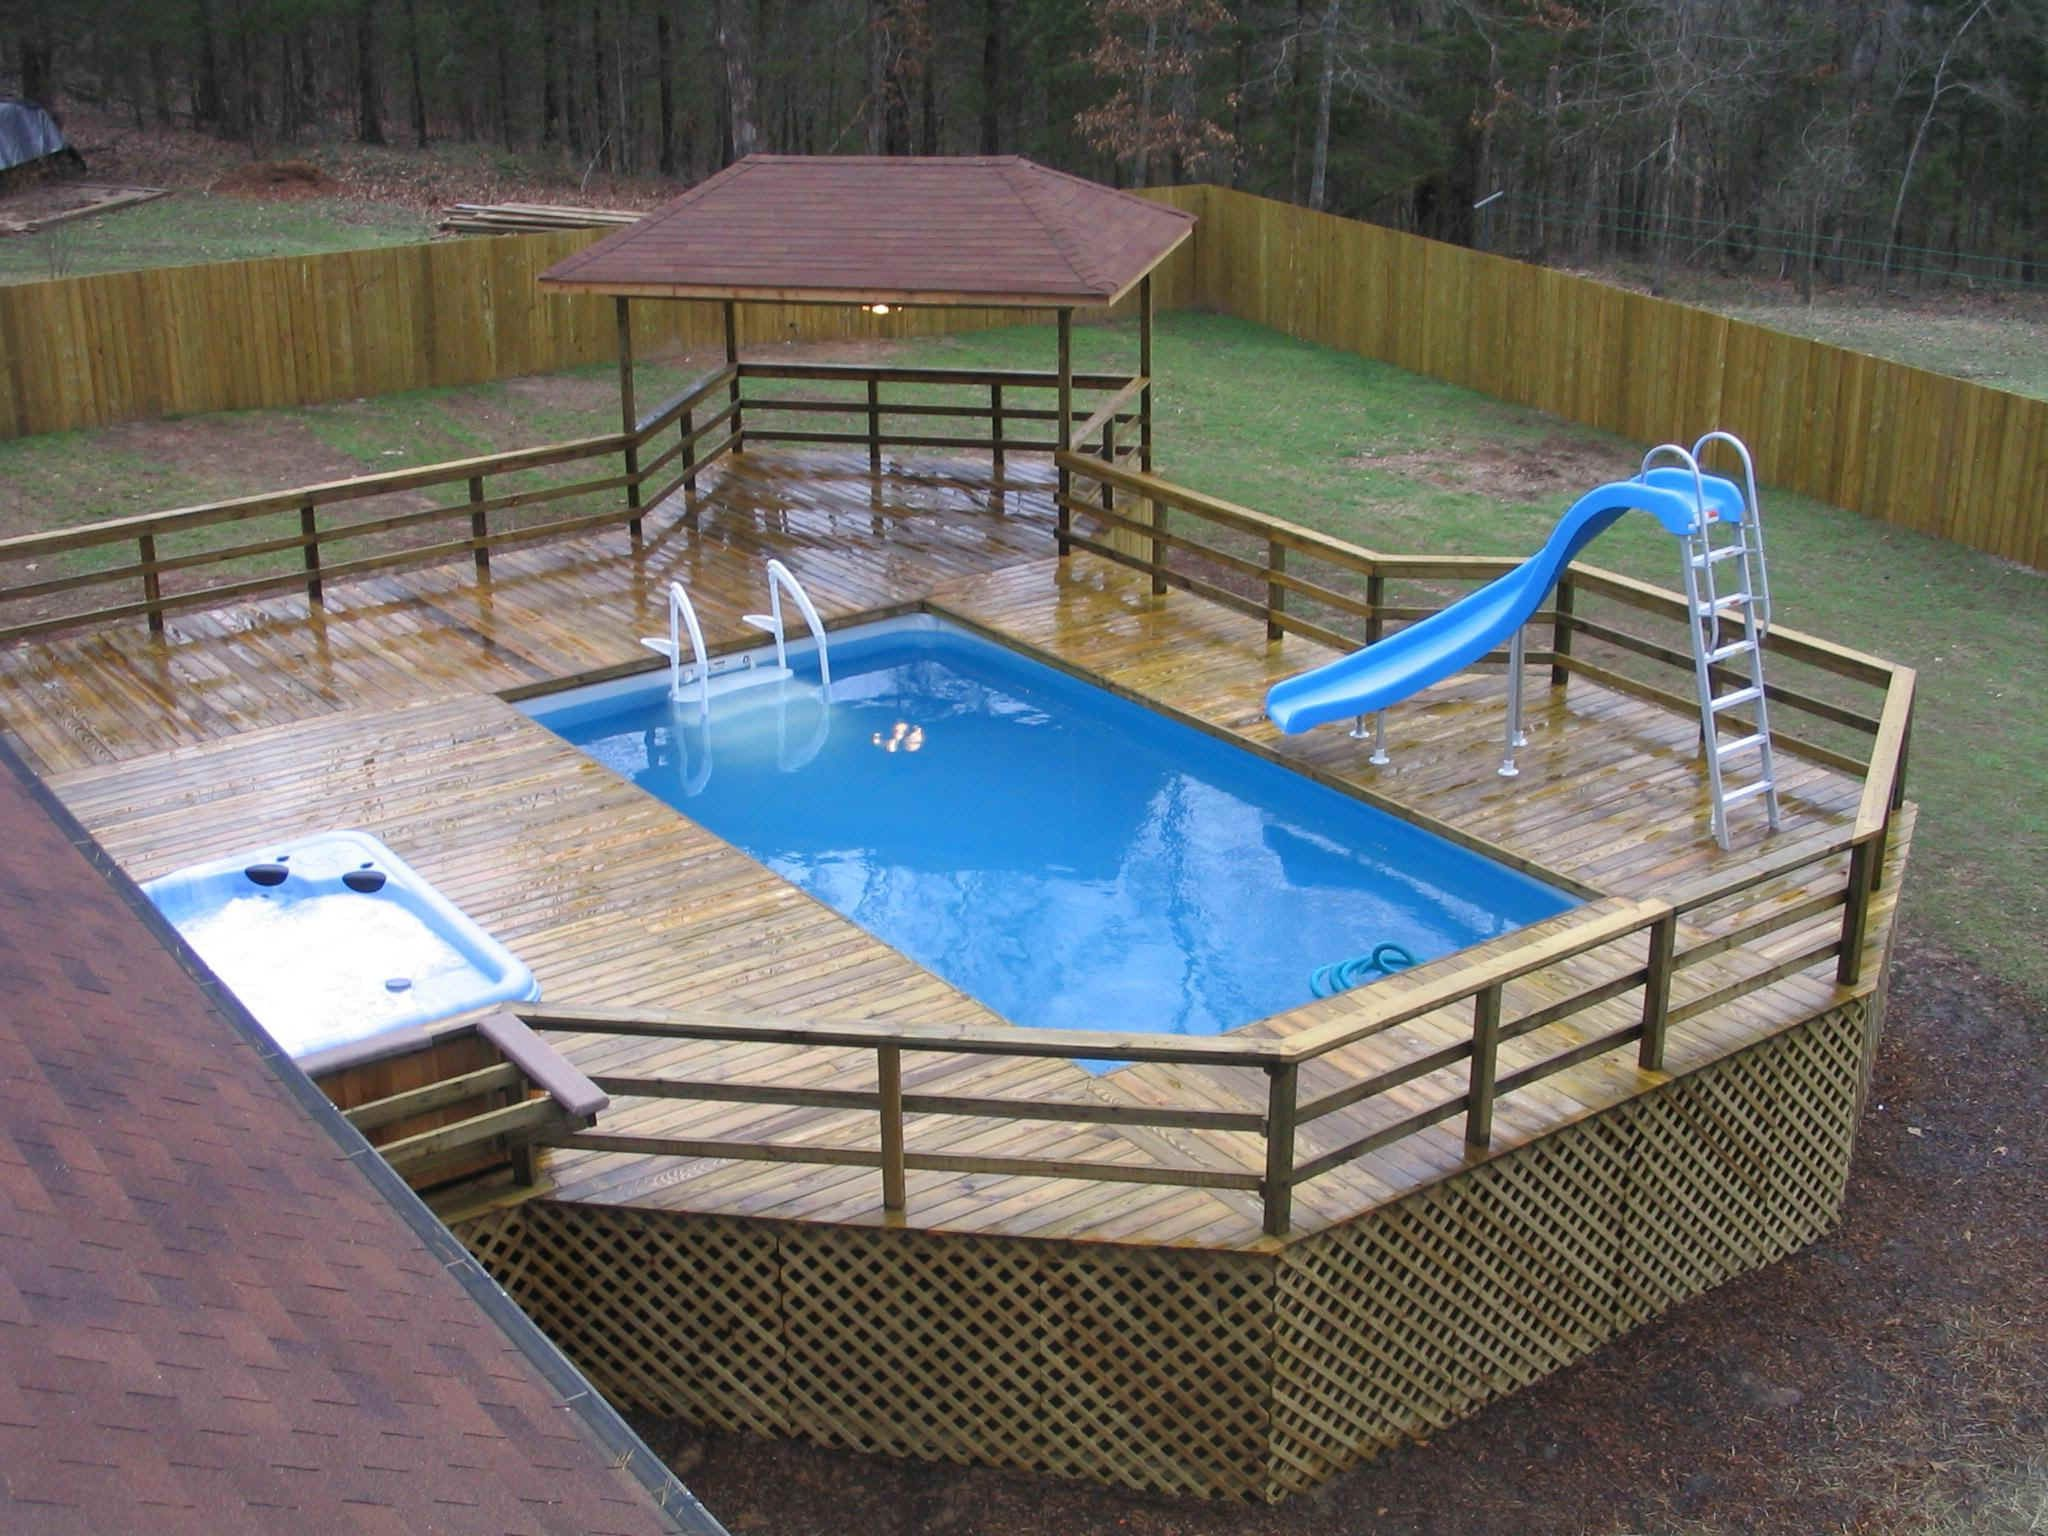 Narrowest rectangular above ground pool pool slides for Wooden pool